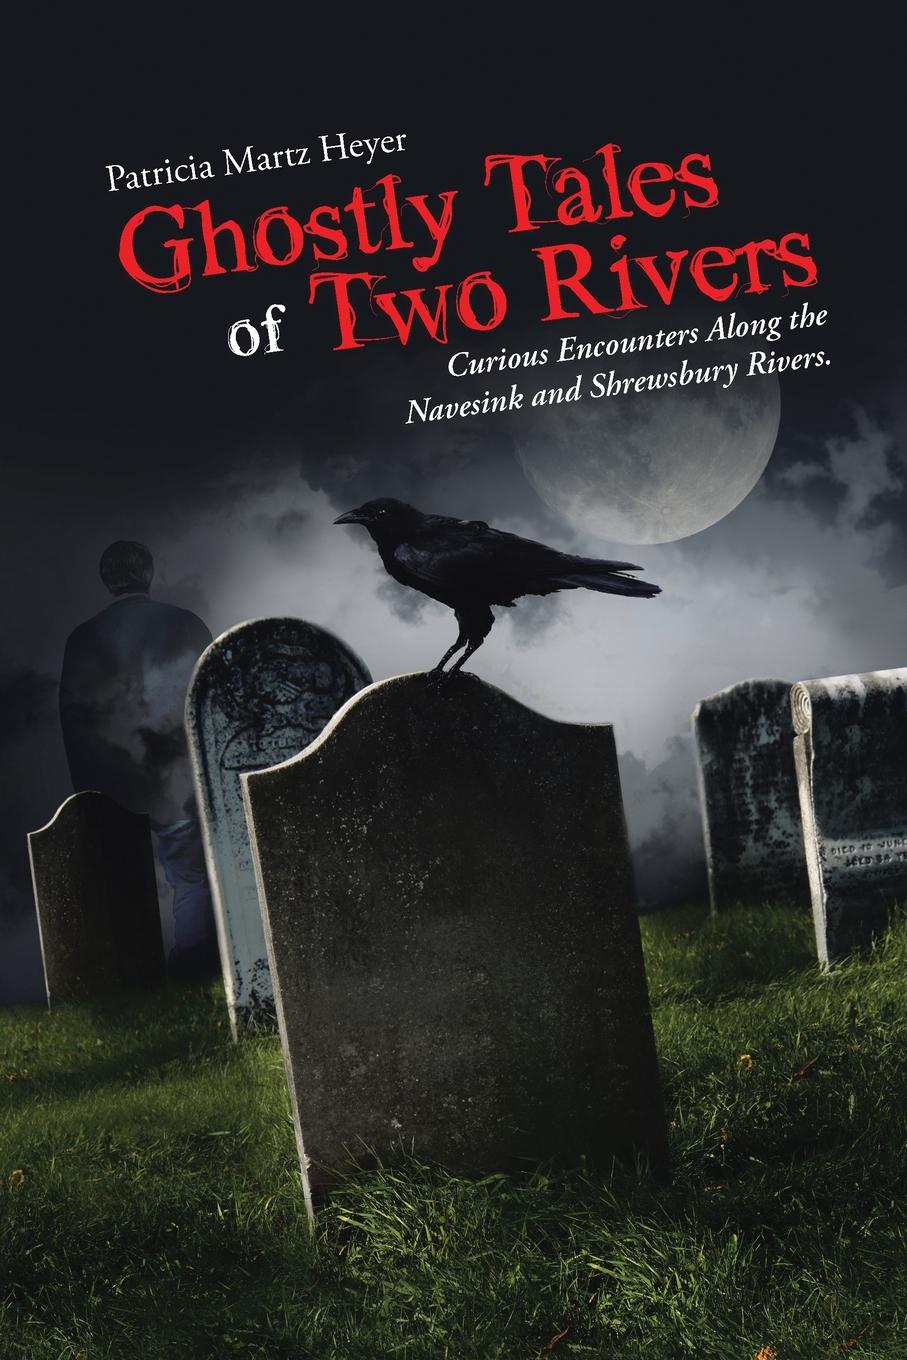 Patricia Martz Heyer Ghostly Tales of Two Rivers. Curious Encounters Along the Navesink and Shrewsbury Rivers. wilhelm hauff c a feiling the cold heart nose the dwarf two german tales